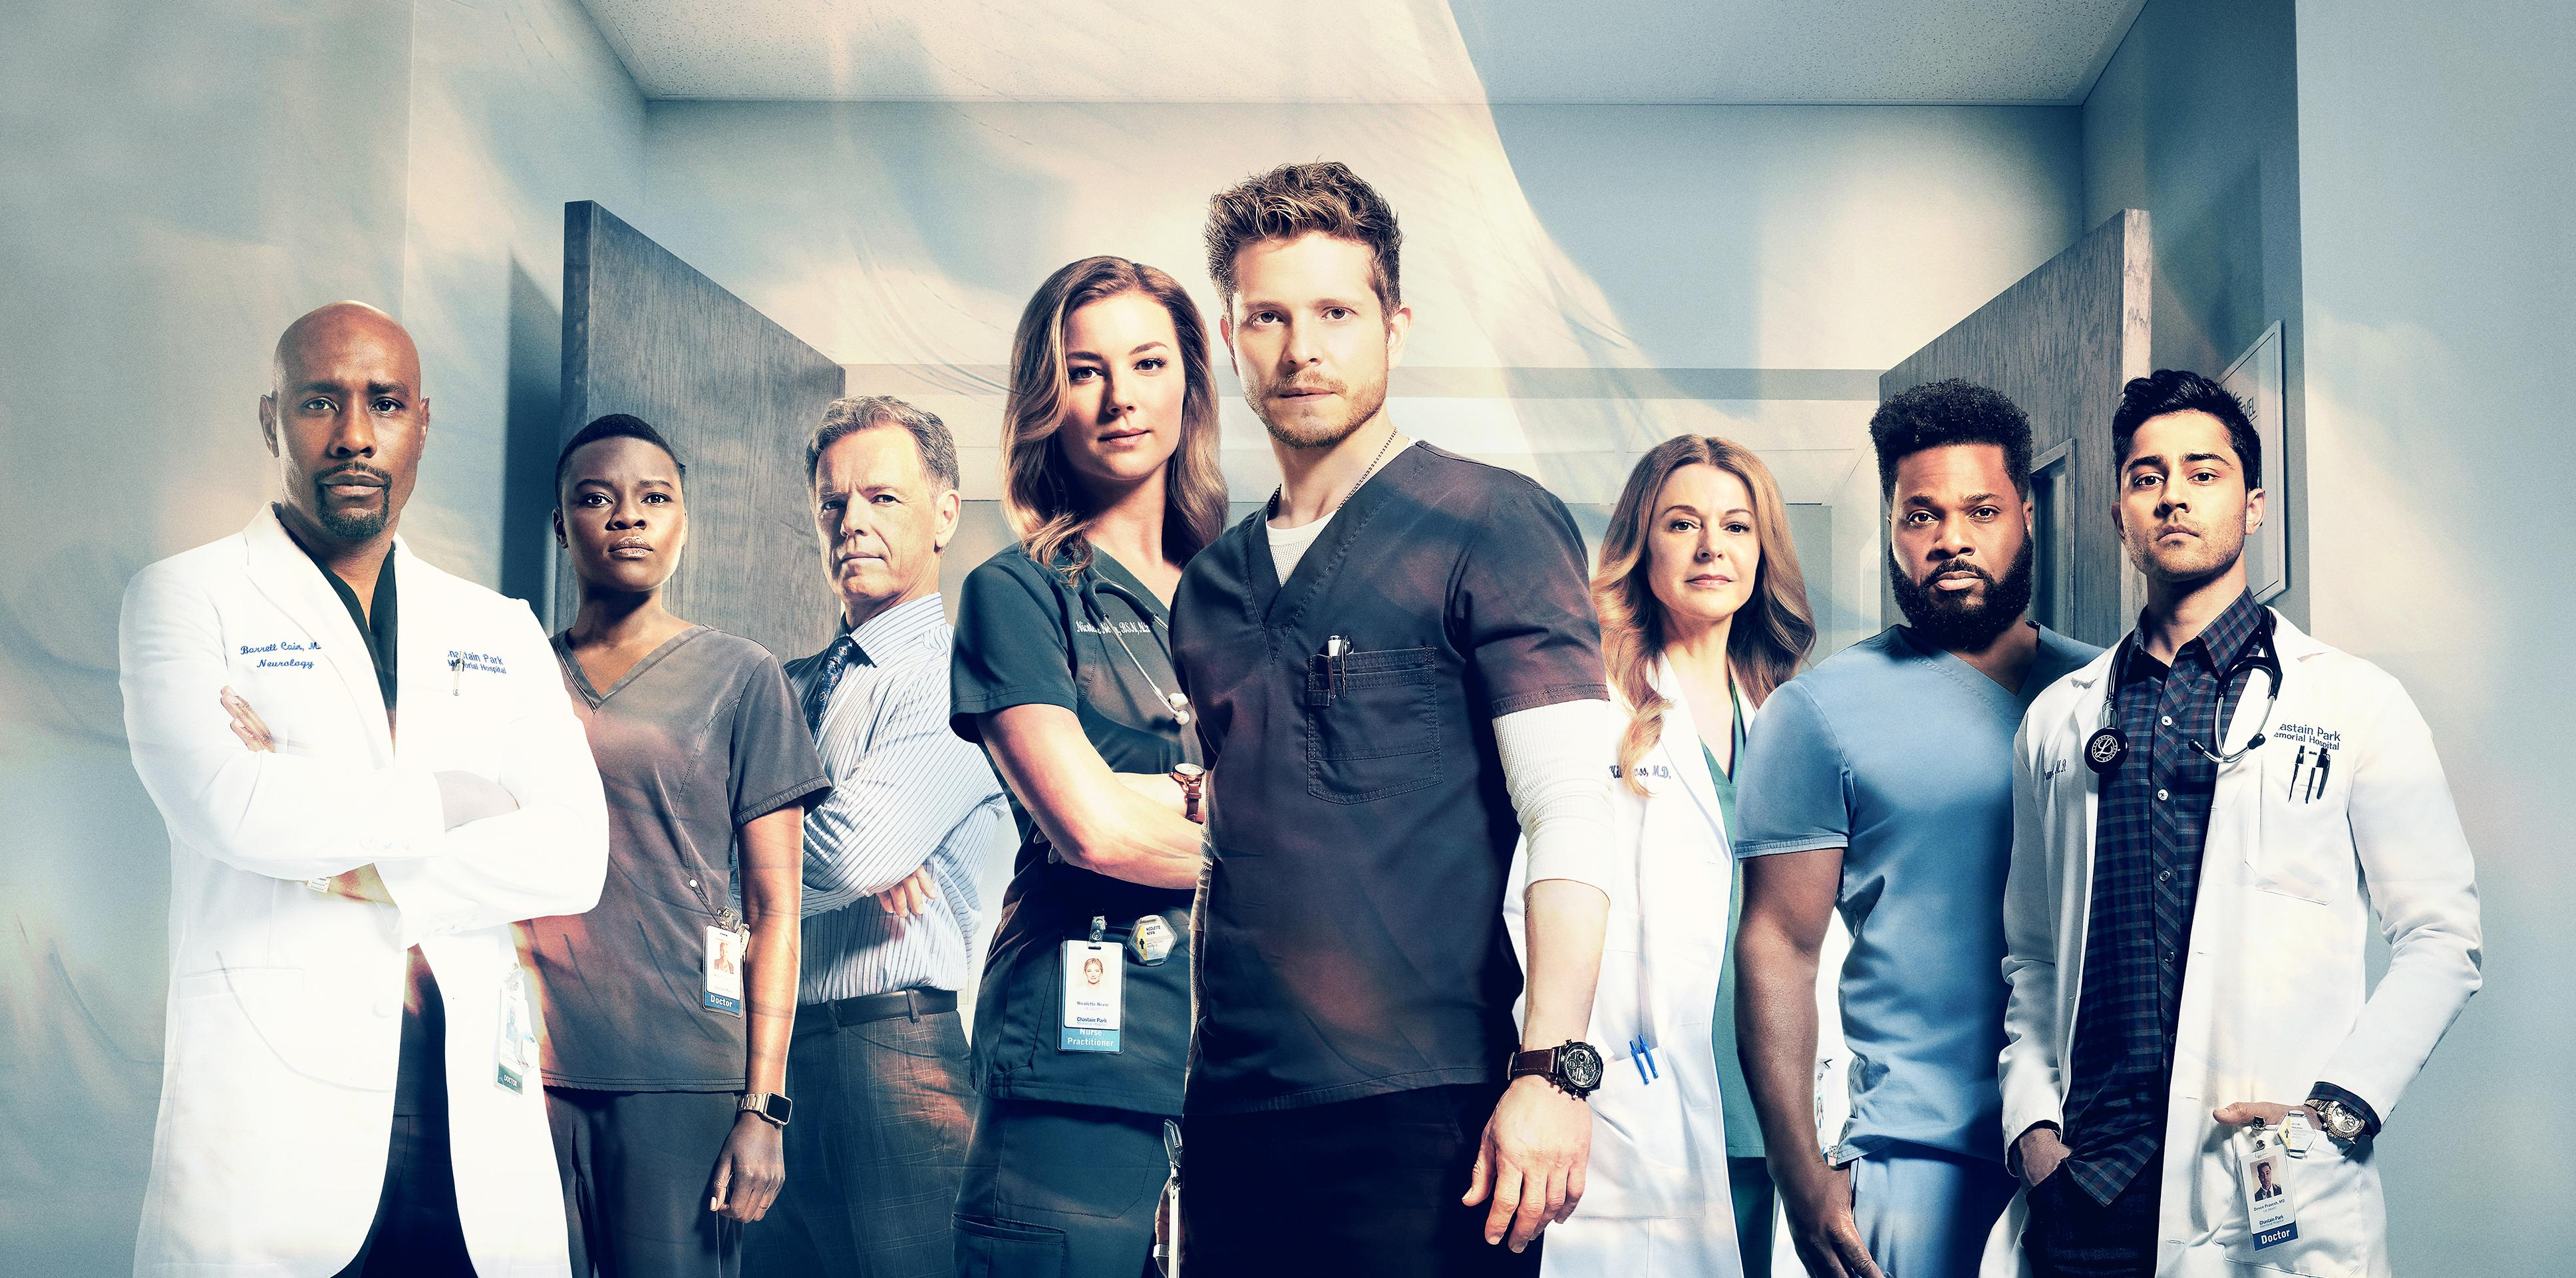 'The Resident' cast